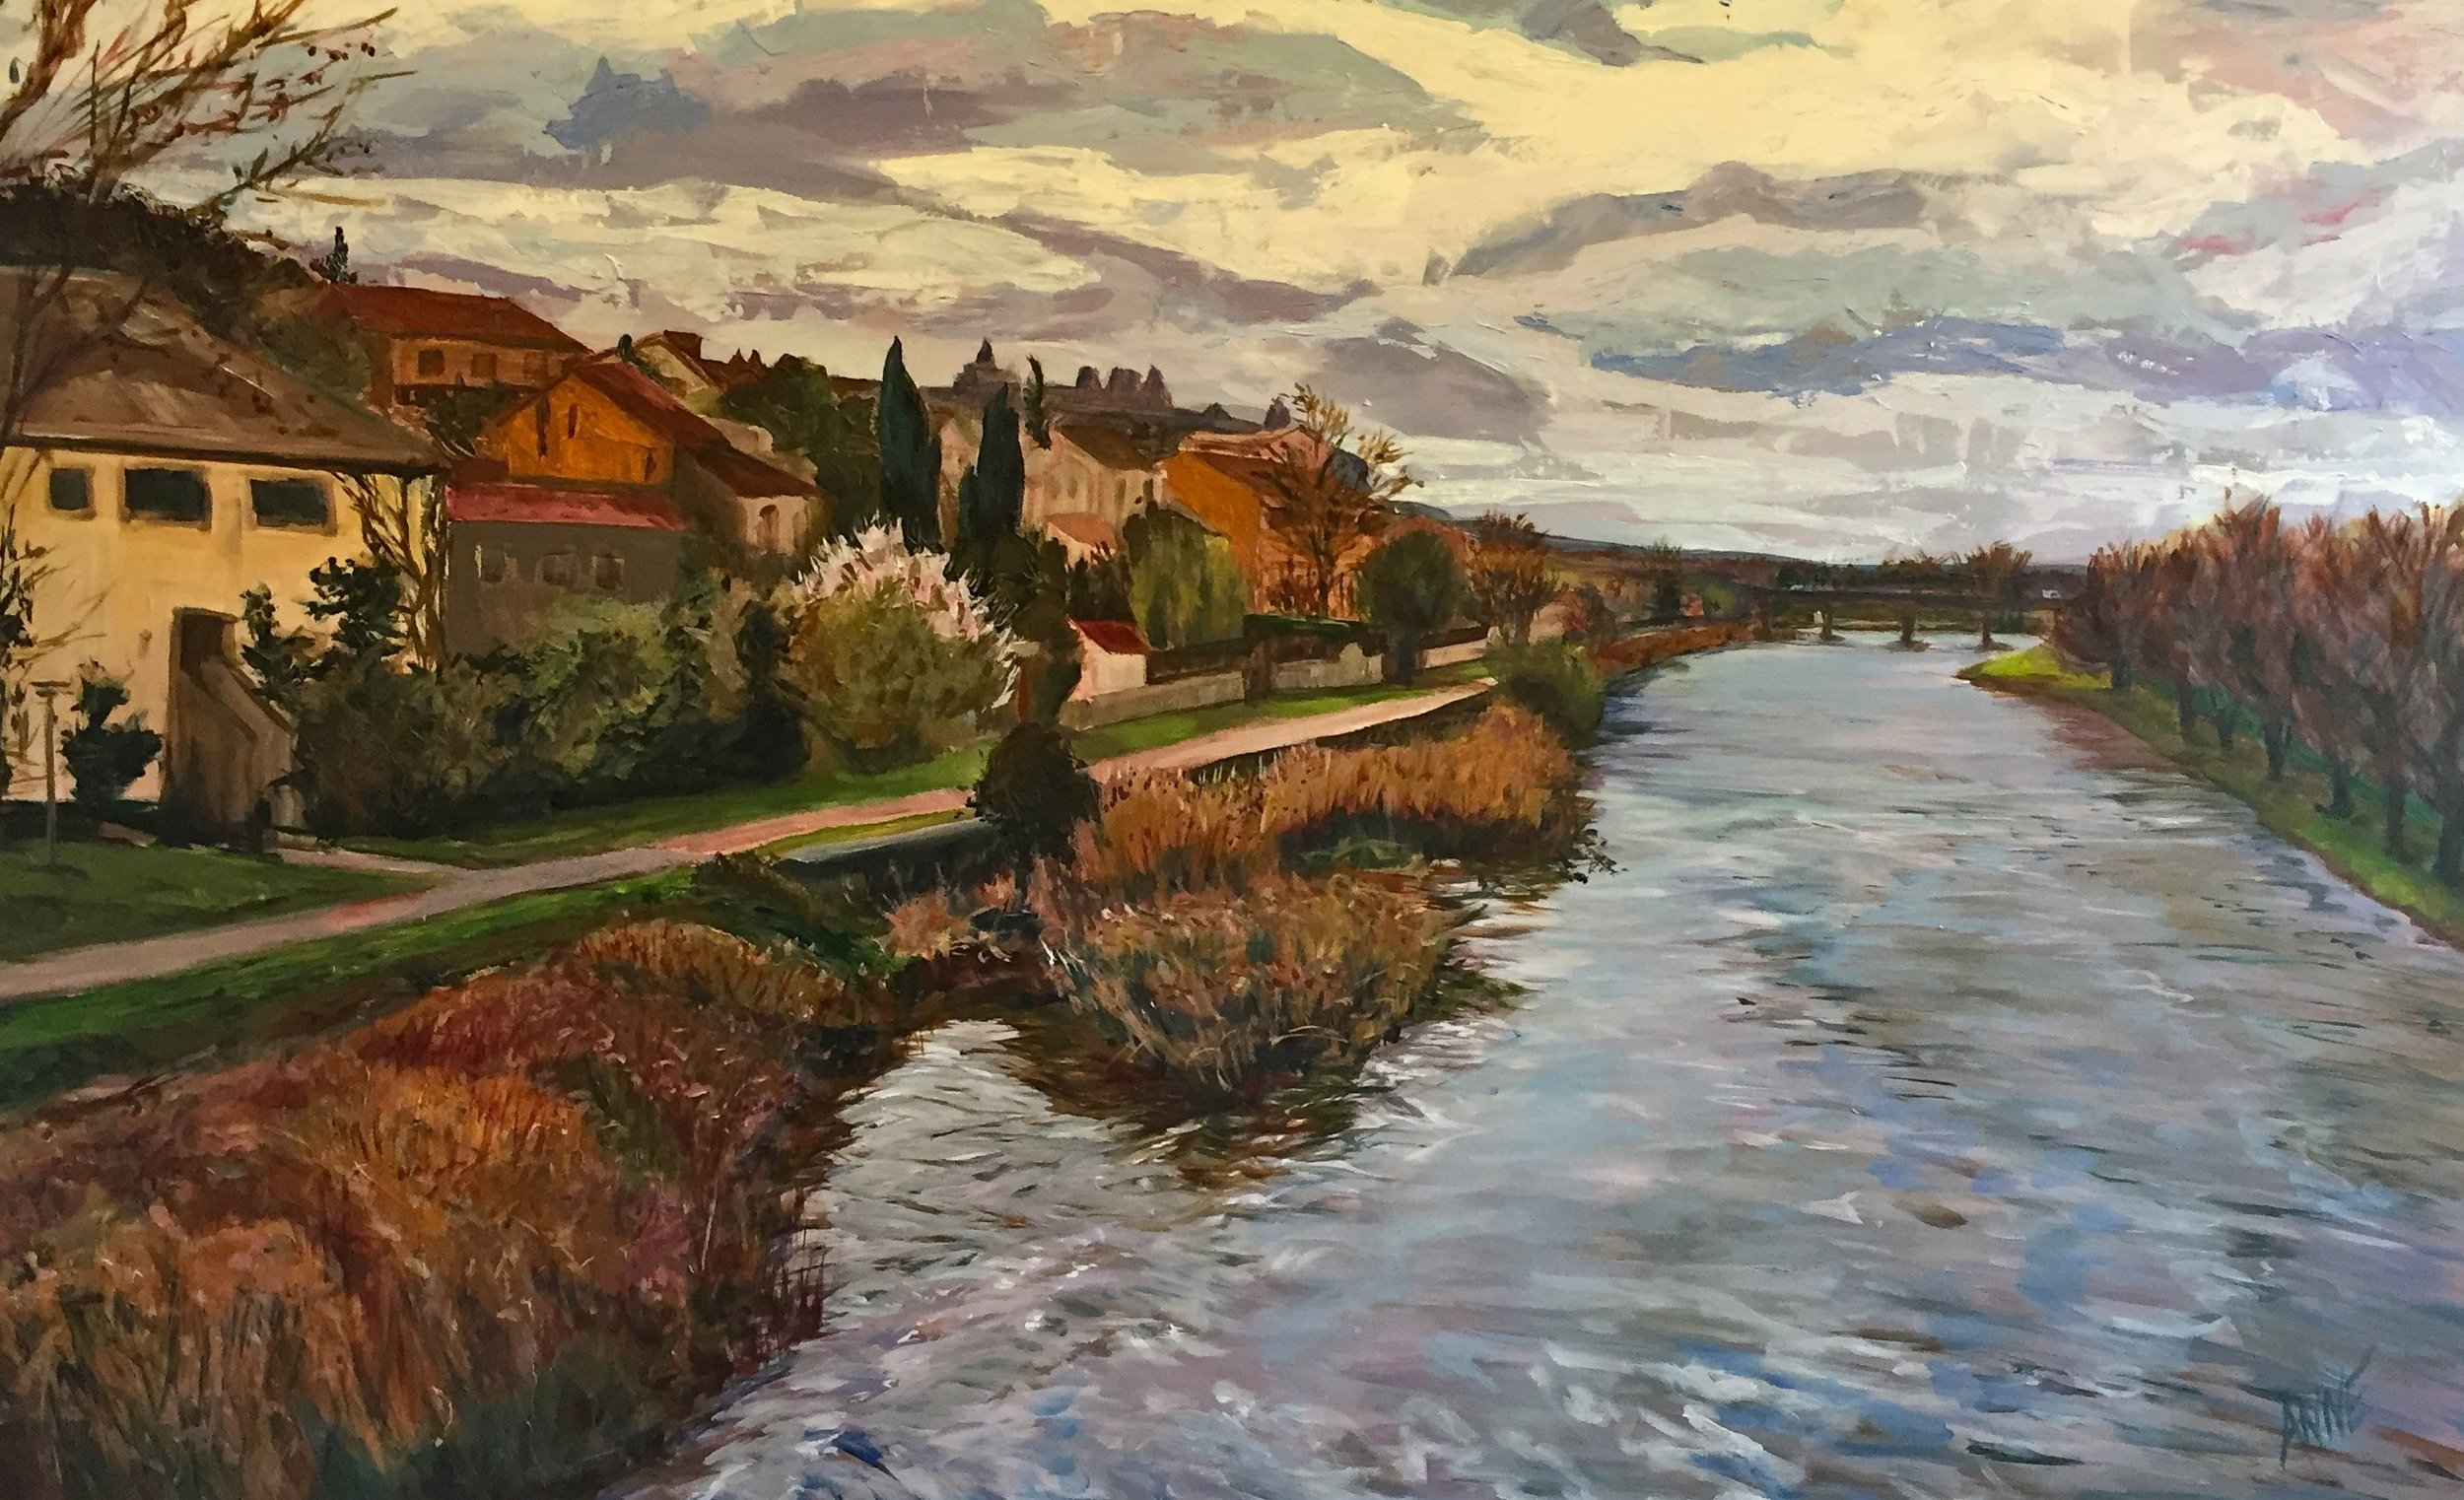 """ Carcassonne e"" by Anne Borders, 30x48in, Acrylic on Canvas, $2100 